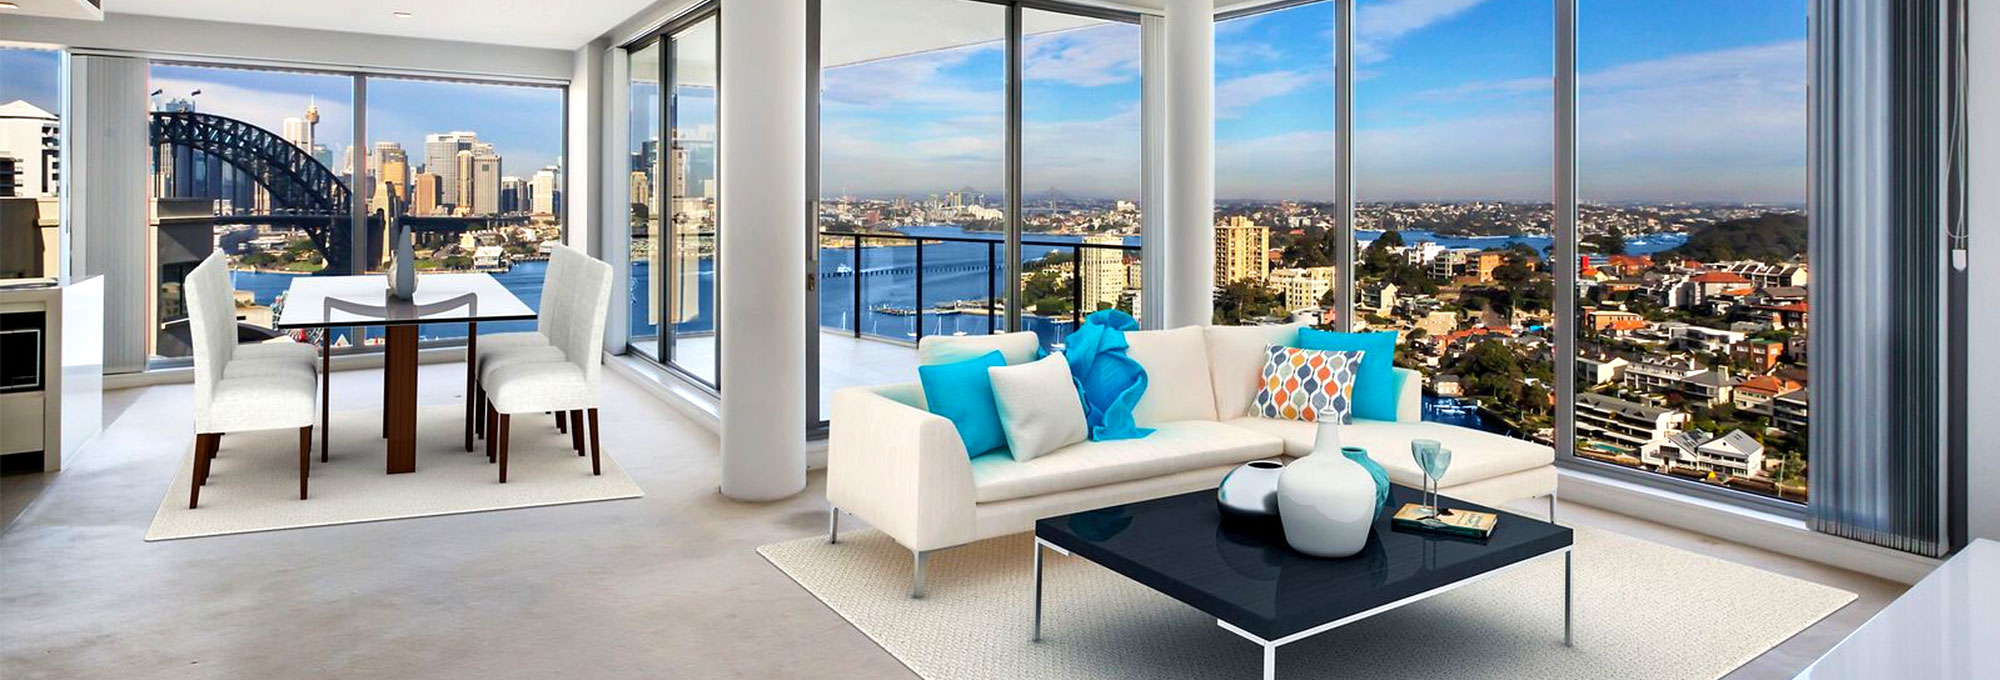 Buyers Agent Sydney Milsons Point